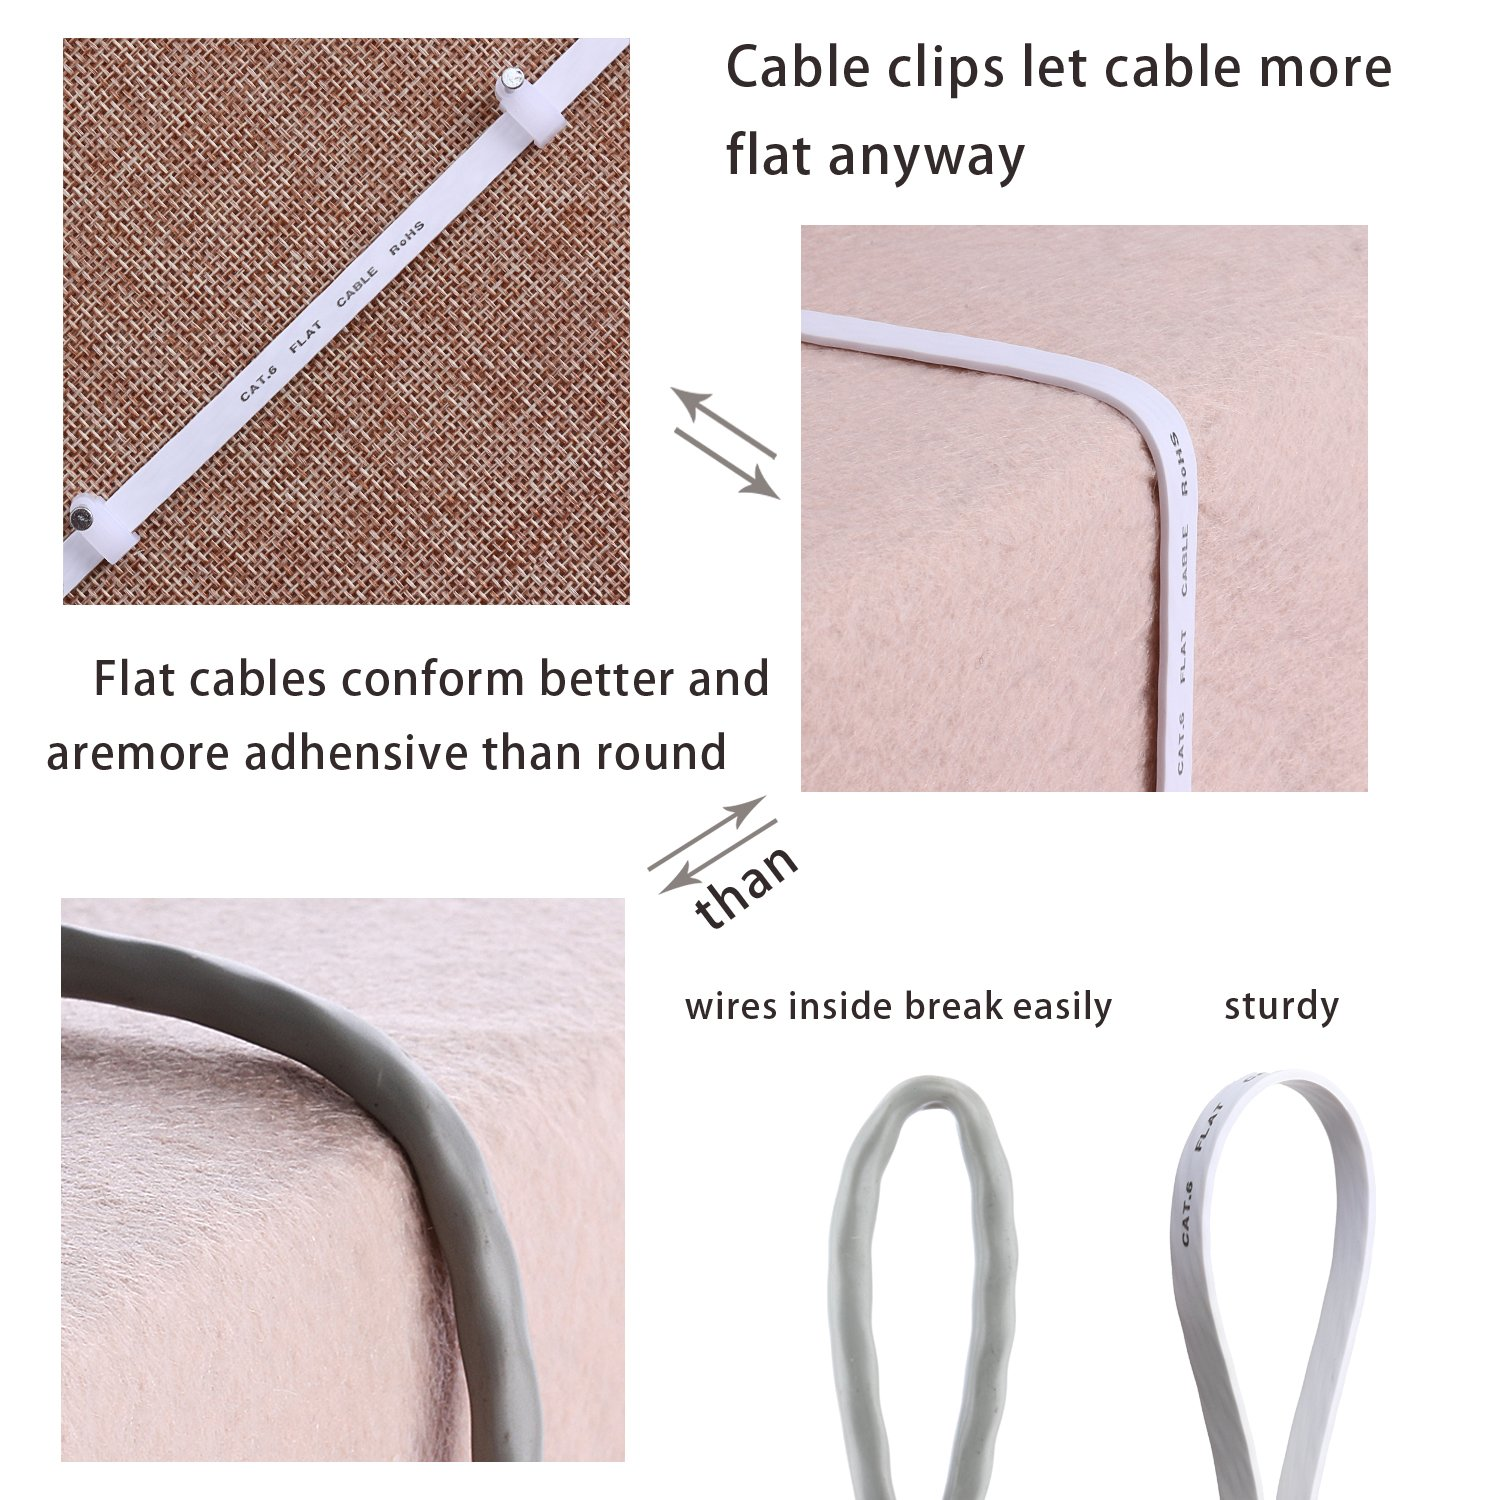 Cat 6 Ethernet Cable 50 Ft White Flat Internet Network Lan Patch For Wiring Router To Diagram Cords Solid Cat6 High Speed Computer Wire With Clips Snagless Rj45 Connectors